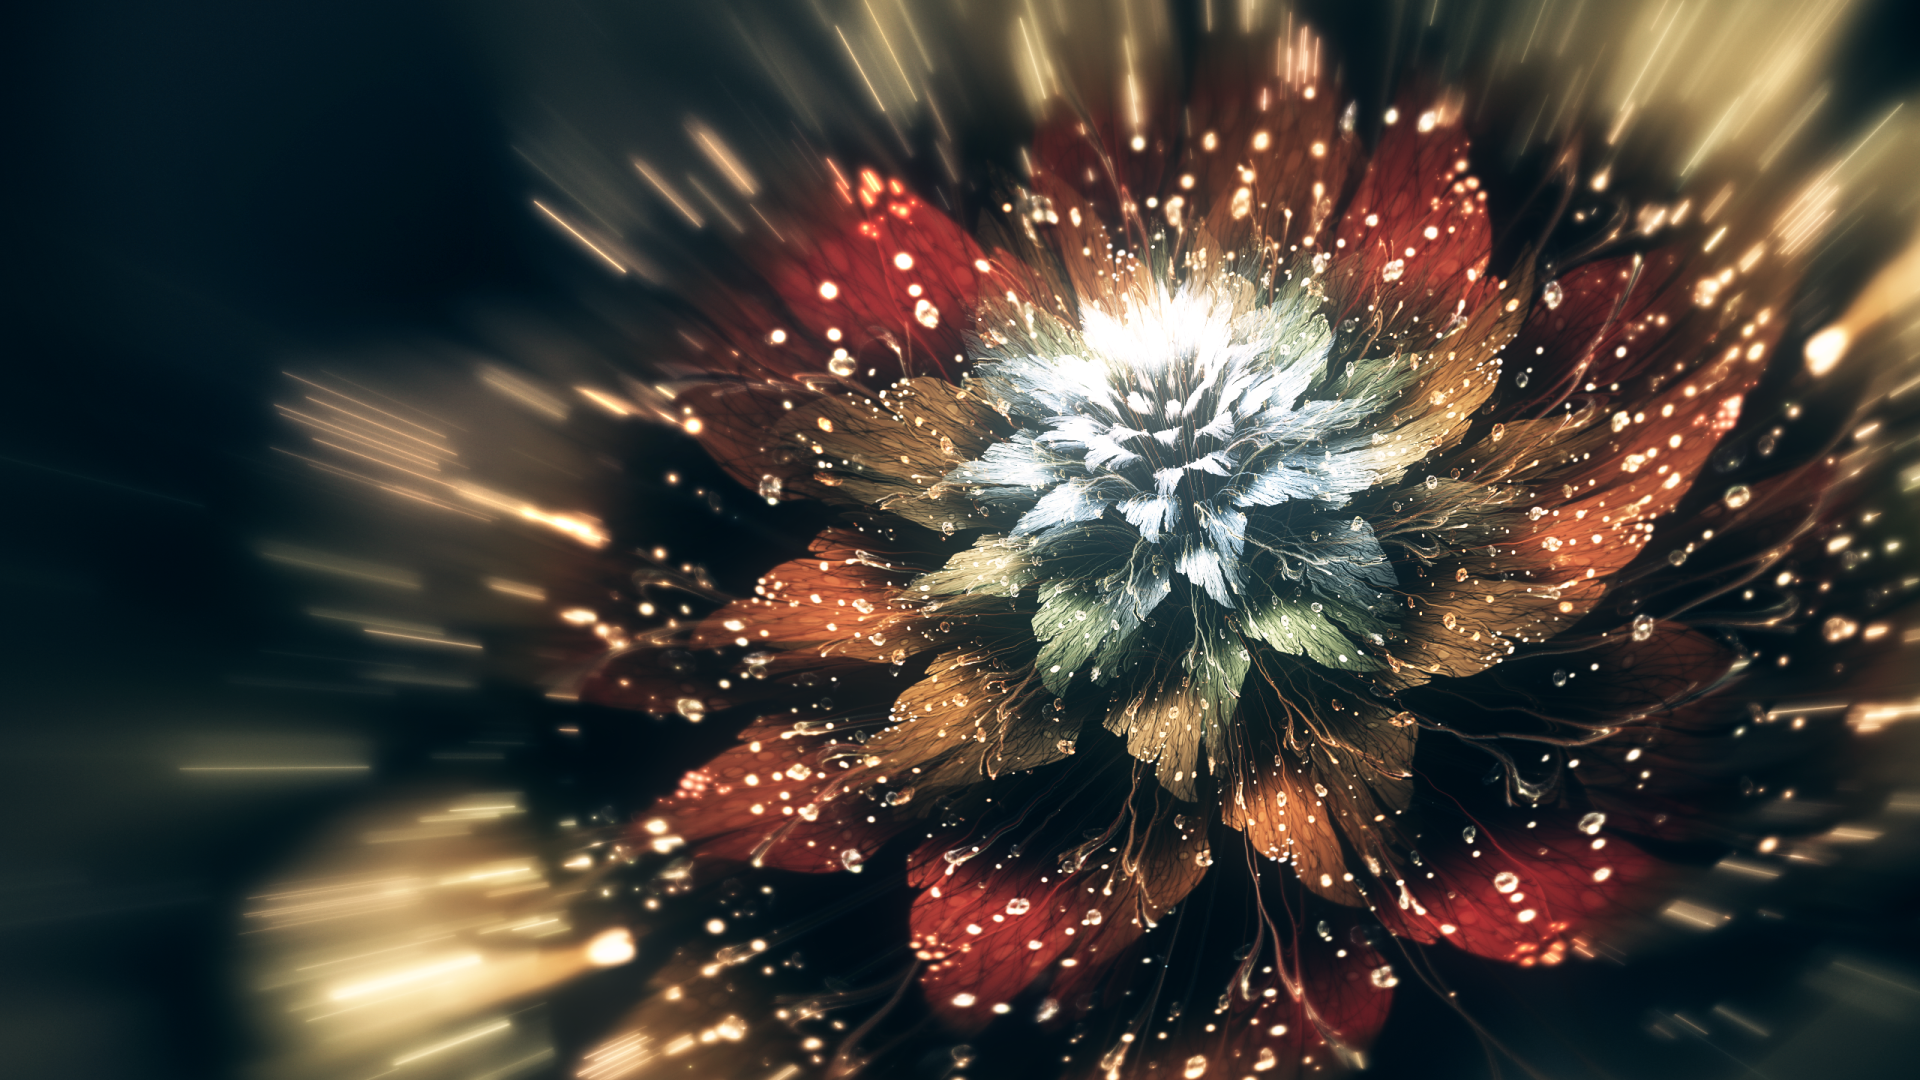 Abstract - Fractal  Flower Abstract Digital Digital Art Artistic Wallpaper